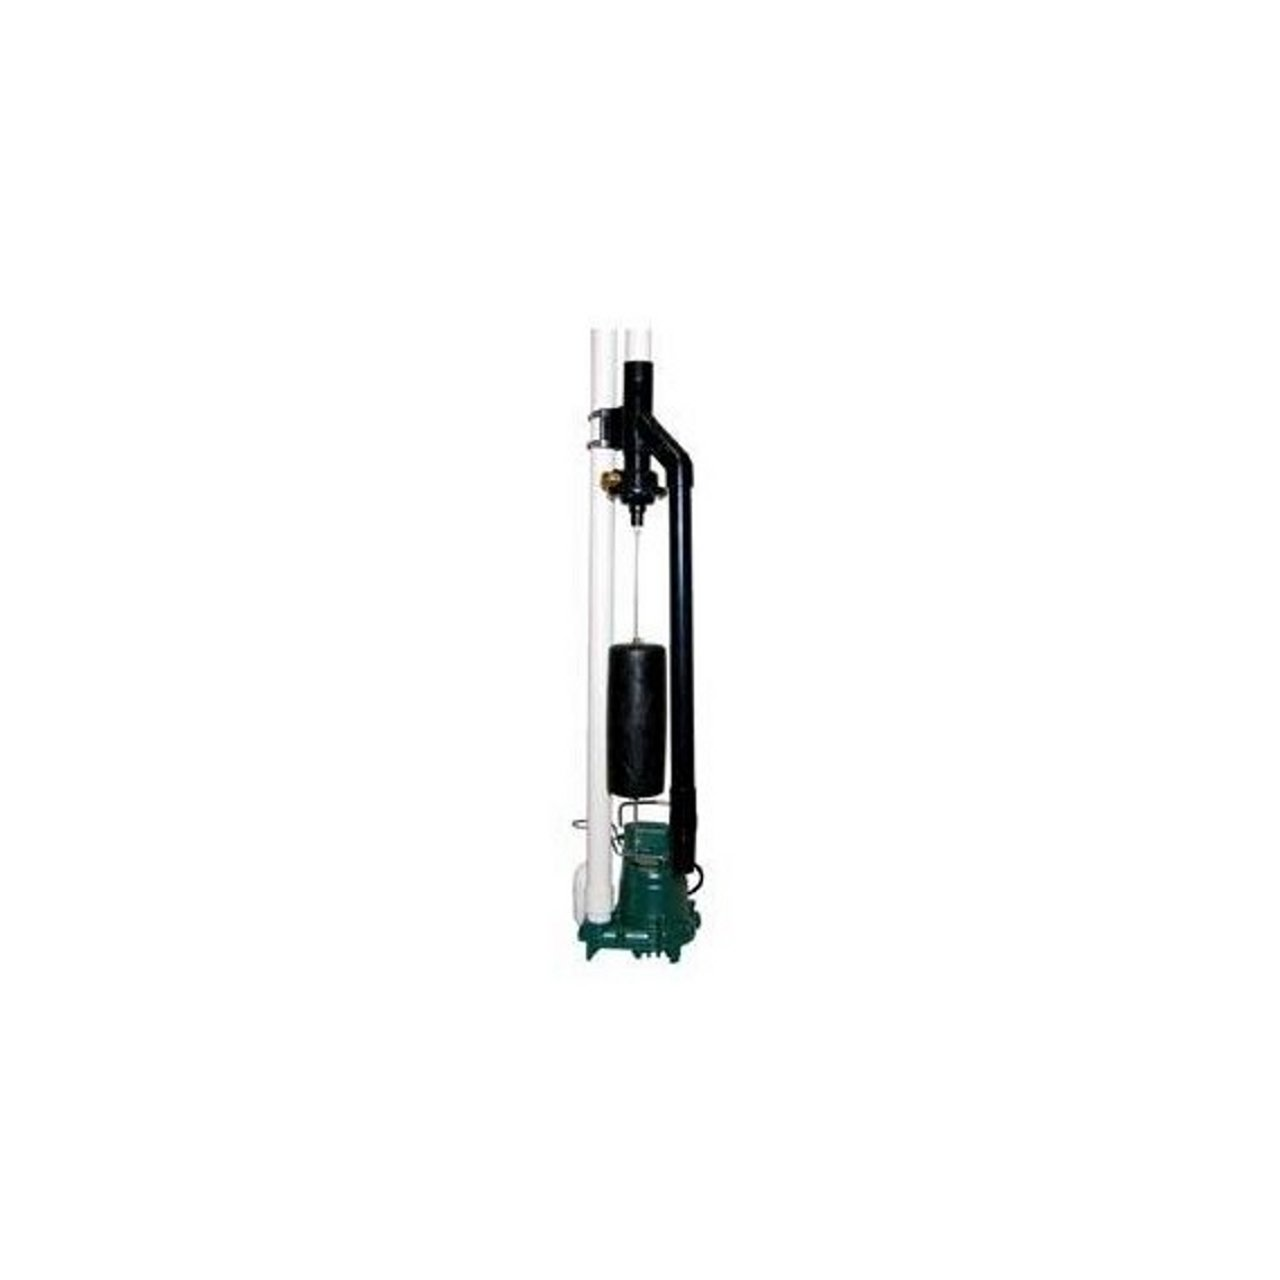 Zoeller 503-0005 Homeguard Max Water Powered Emergency Backup Pump System